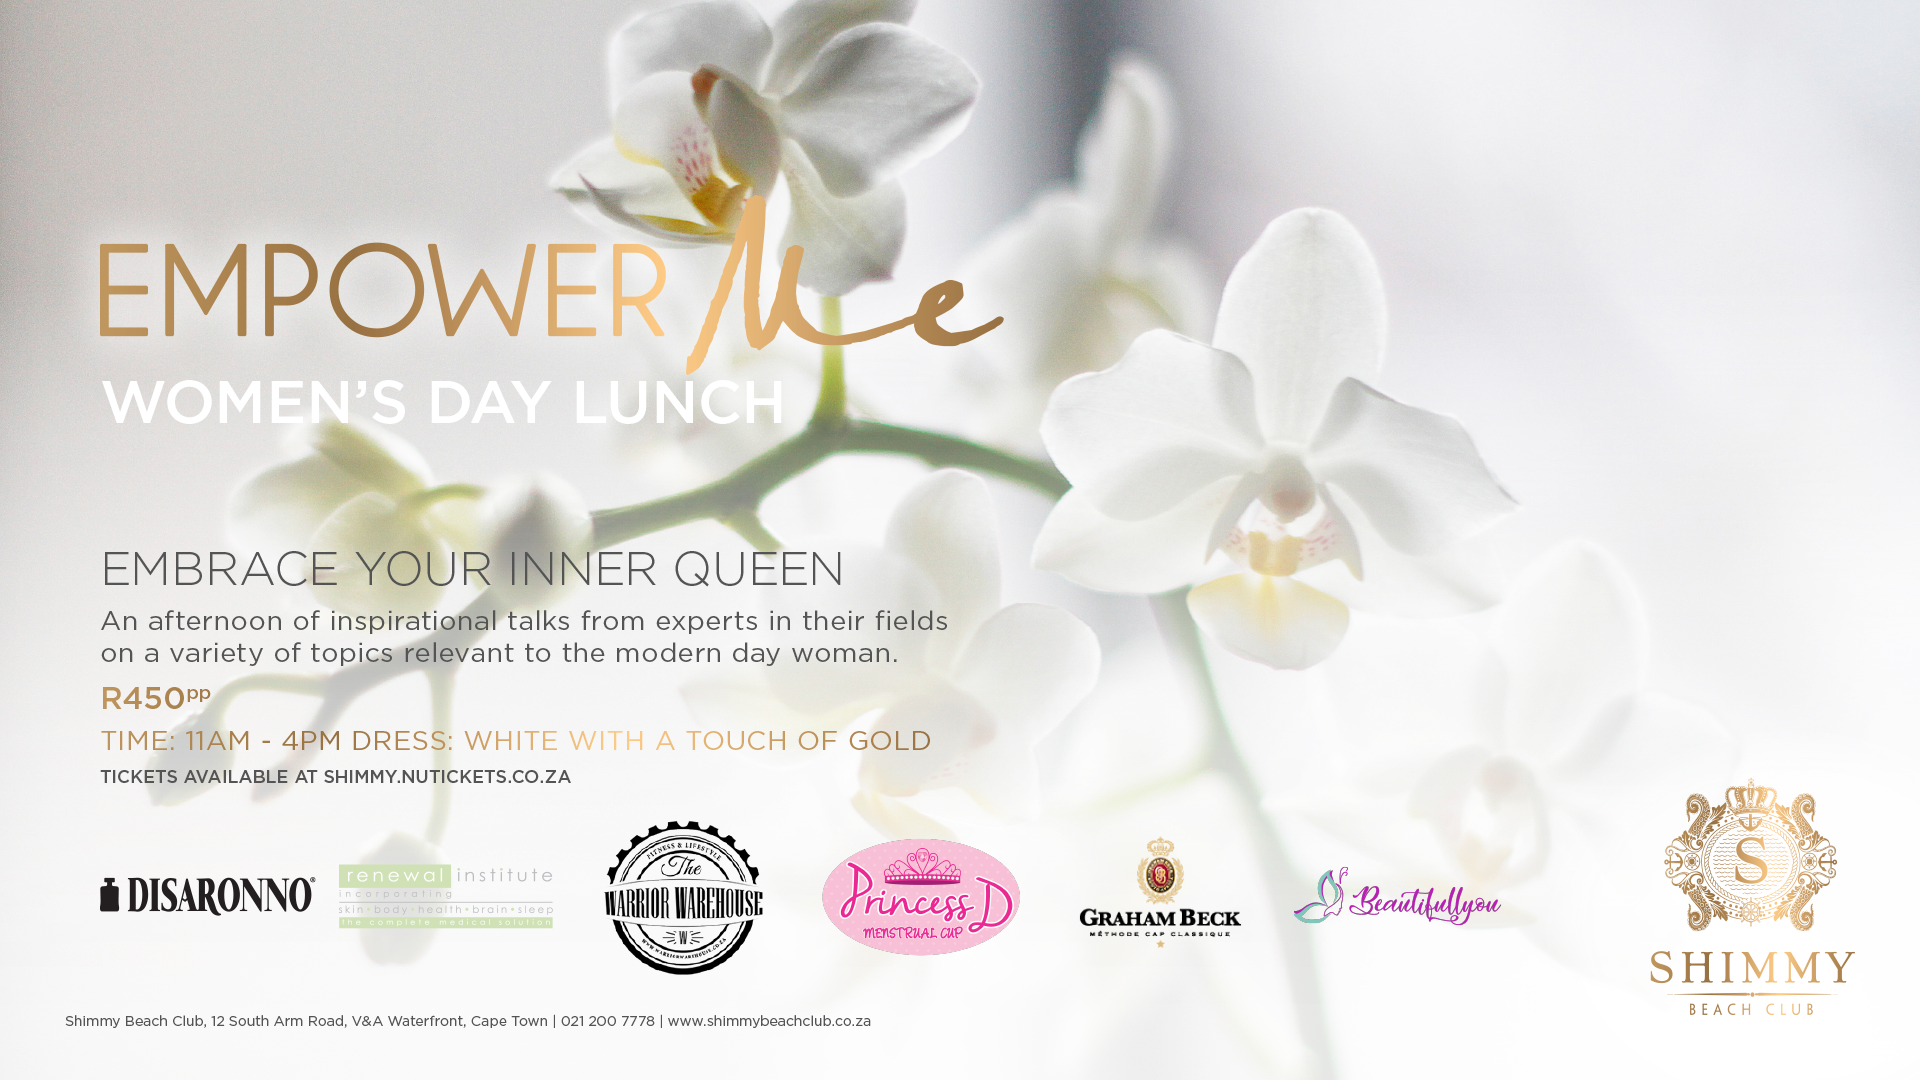 00056sbc_empower_me_womens_day_fb_event_cover_1920x1080.png